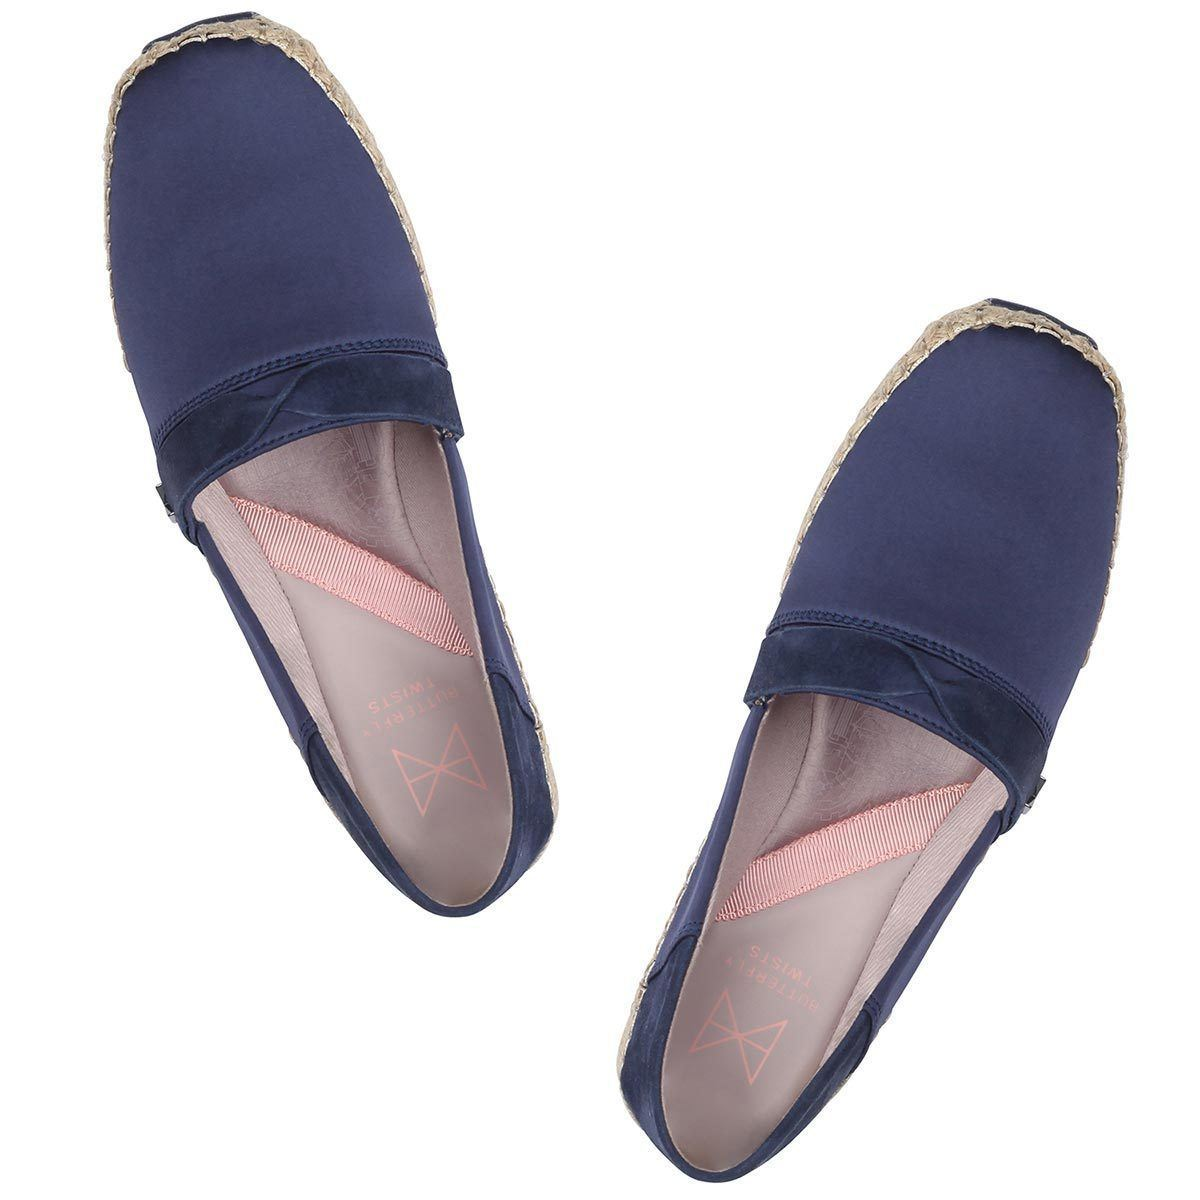 MAYA brings together comfort, ease and style; with the option to fold down the back counter for slip on convenience. Navy satin and suede detailing combine for a timeless finish. A versatile, square toe slip on with a foldable back counter Lightweight EVA platform with raffia jute wrap Silky navy satin and tactile suede A breathable, soft cotton lining Cushioning memory foam insoles for added comfort Twist Tech Technology Durable, skid resistant rubber sole We deliver to over 50 countries worldw